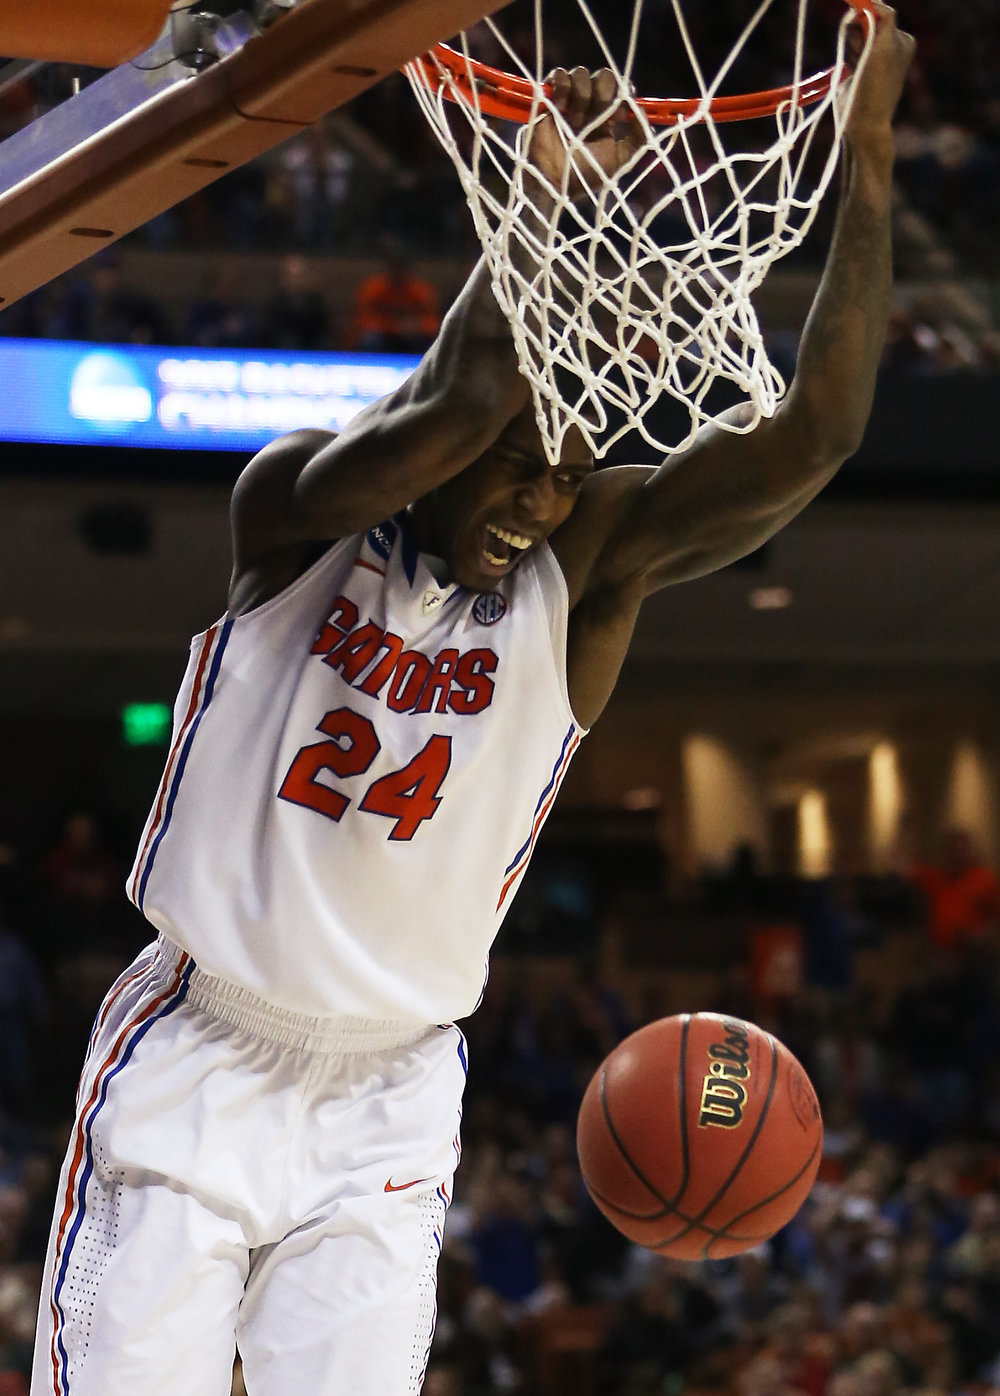 . Casey Prather #24 of the Florida Gators dunks against the Minnesota Golden Gophers during the third round of the 2013 NCAA Men\'s Basketball Tournament at The Frank Erwin Center on March 24, 2013 in Austin, Texas.  (Photo by Ronald Martinez/Getty Images)